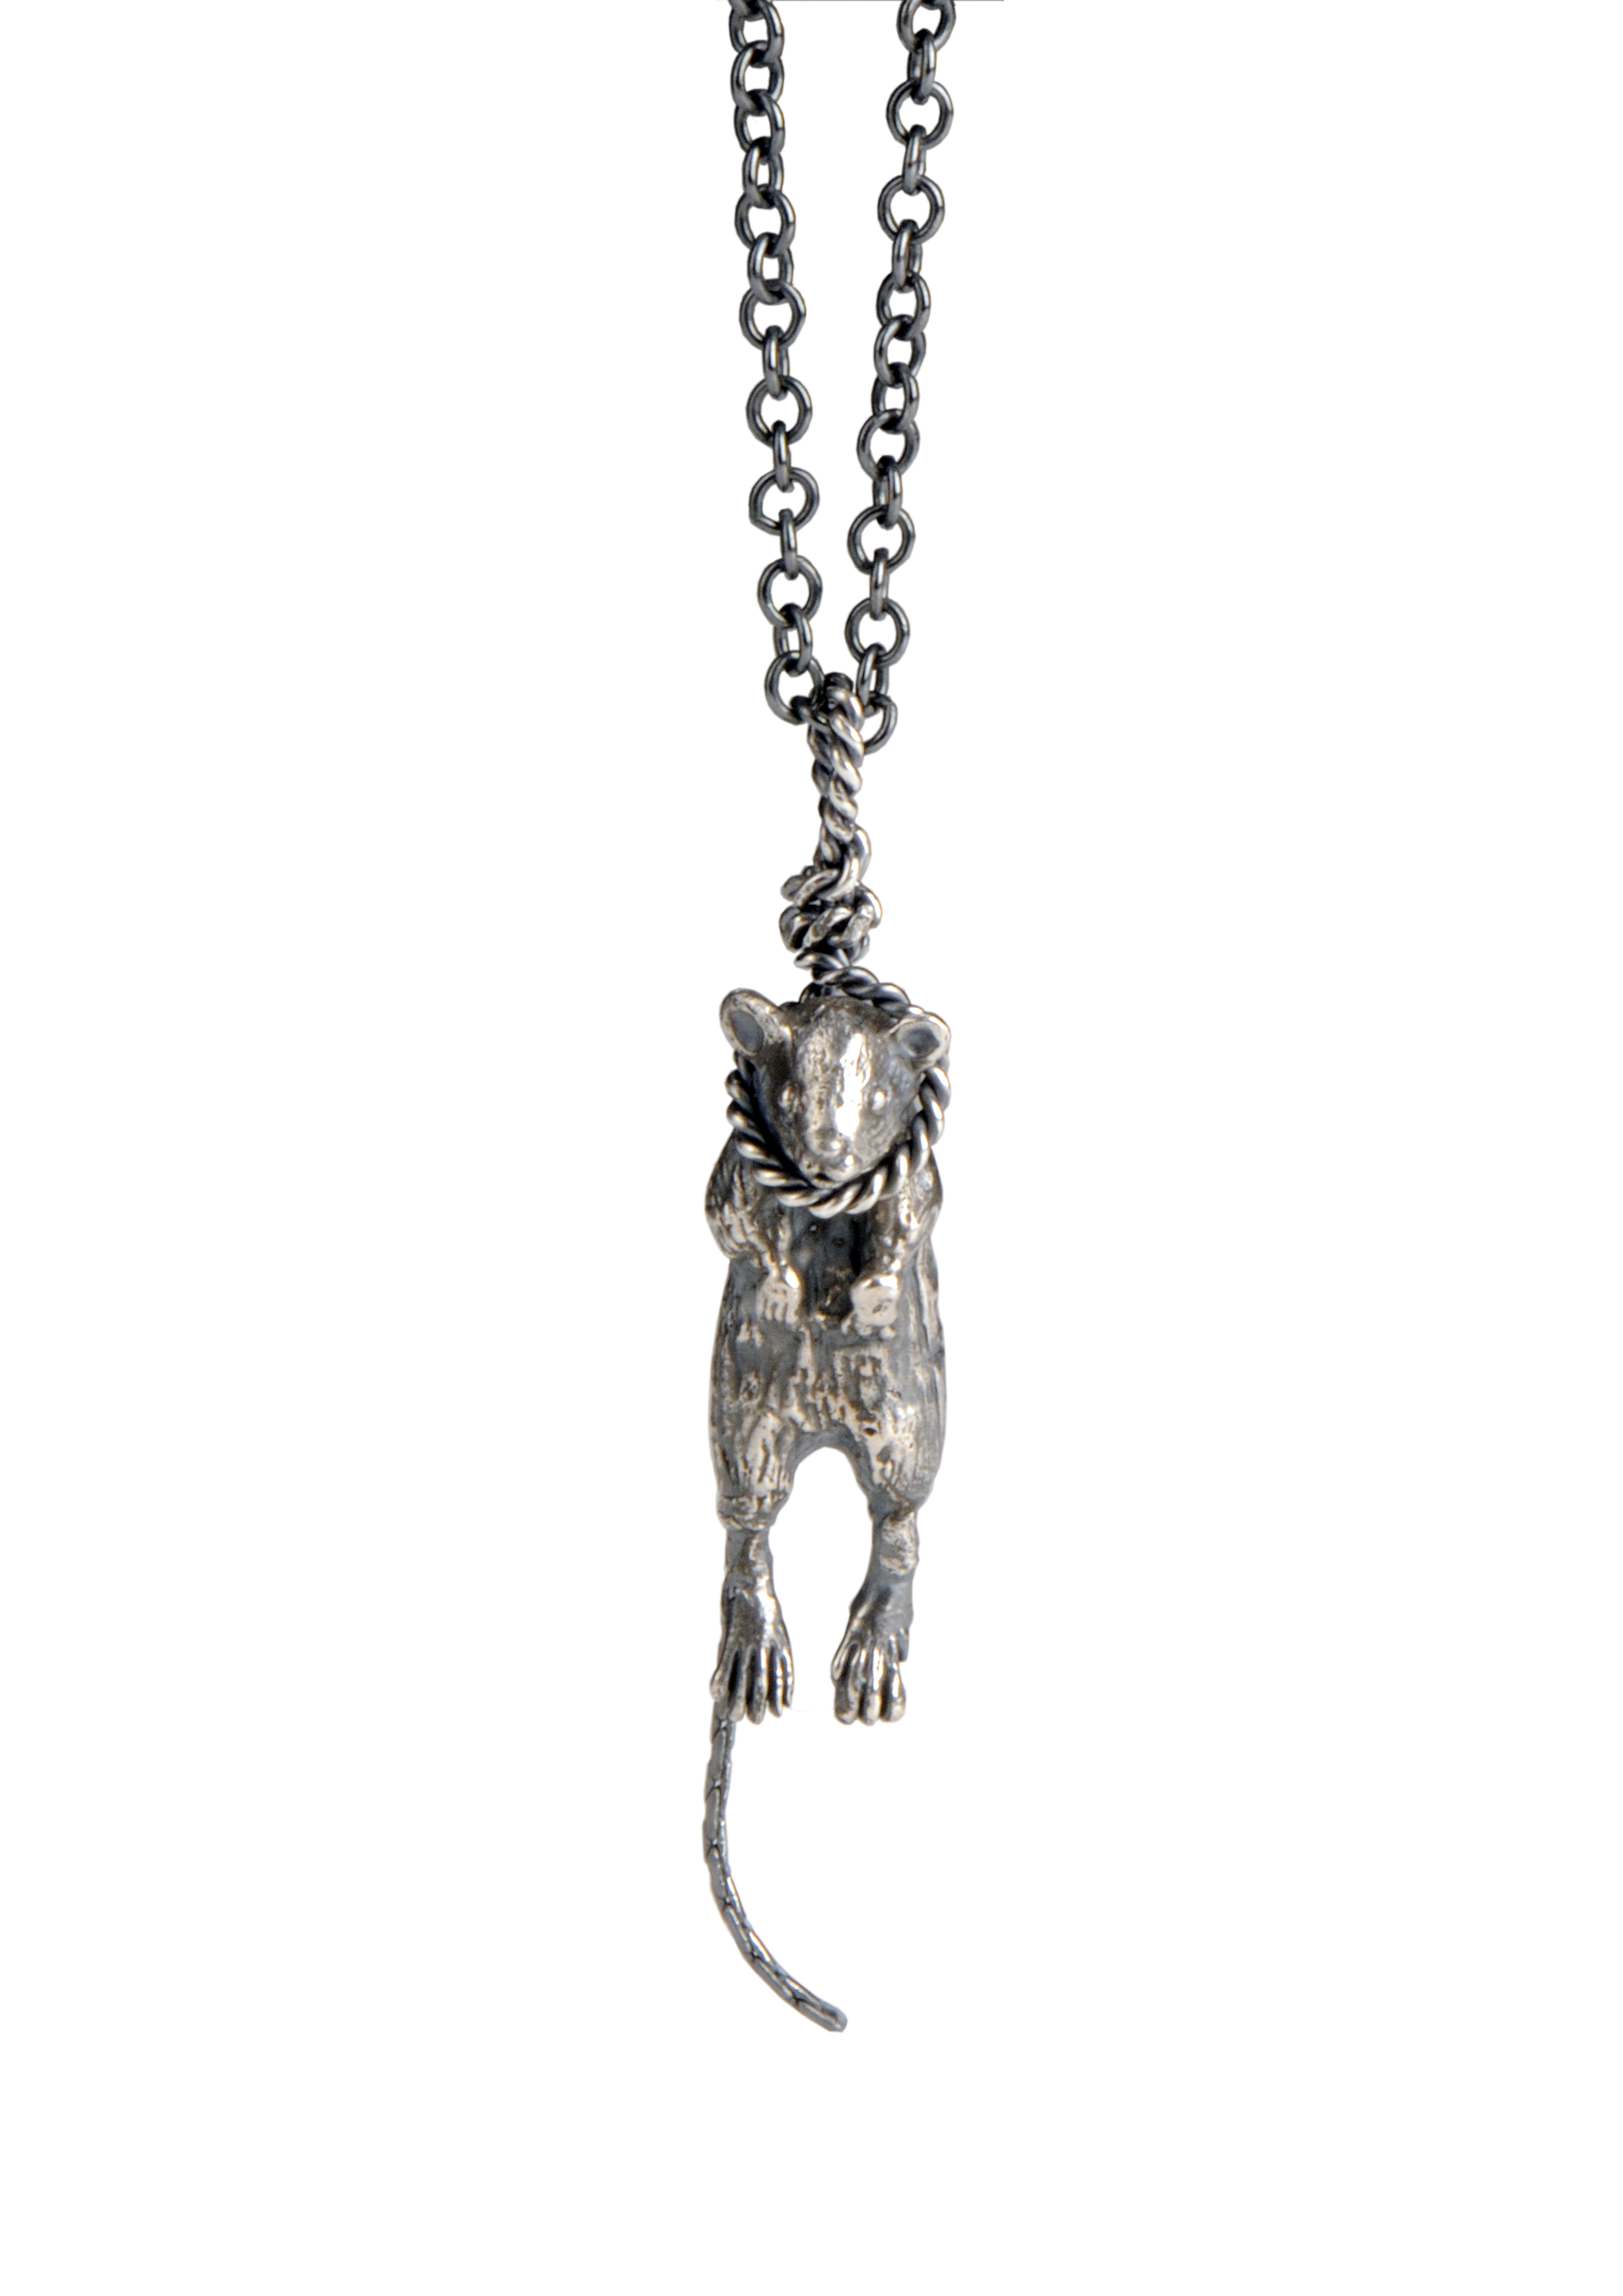 Momocreatura  hanged mouse pendant.jpg